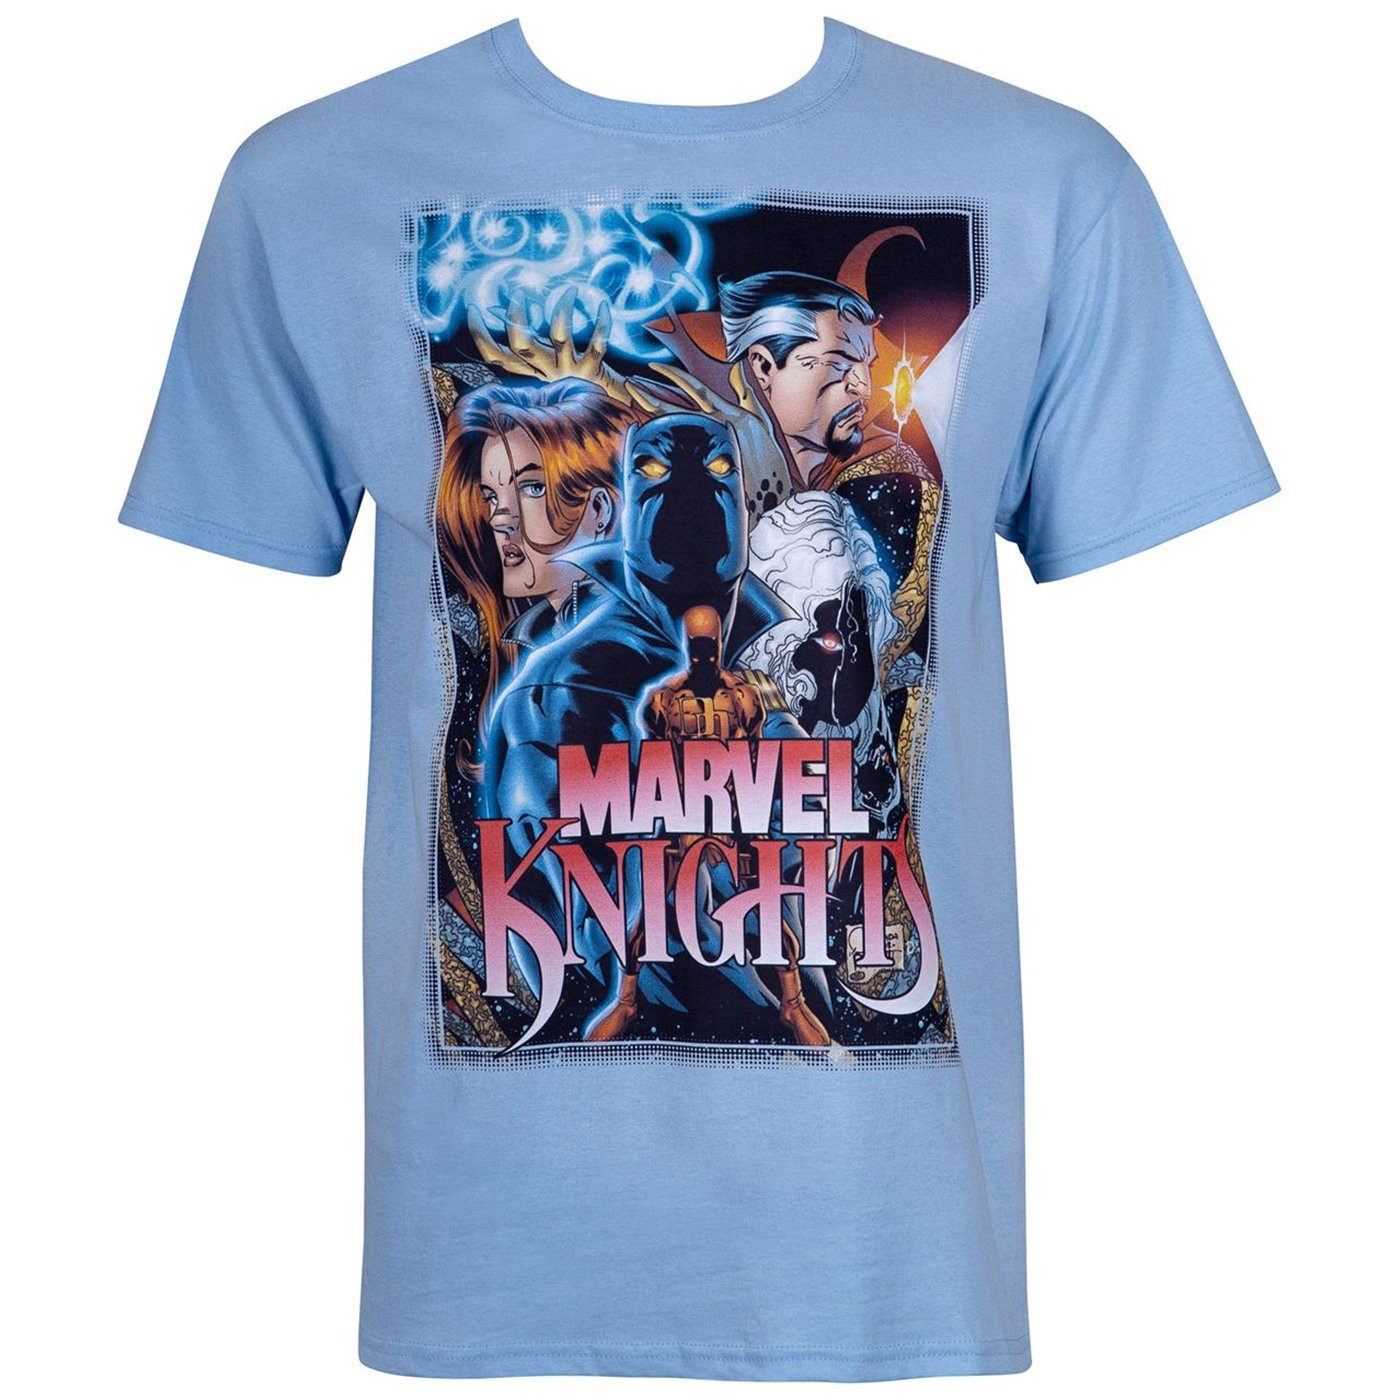 Original Marvel Knights Men's T-Shirt